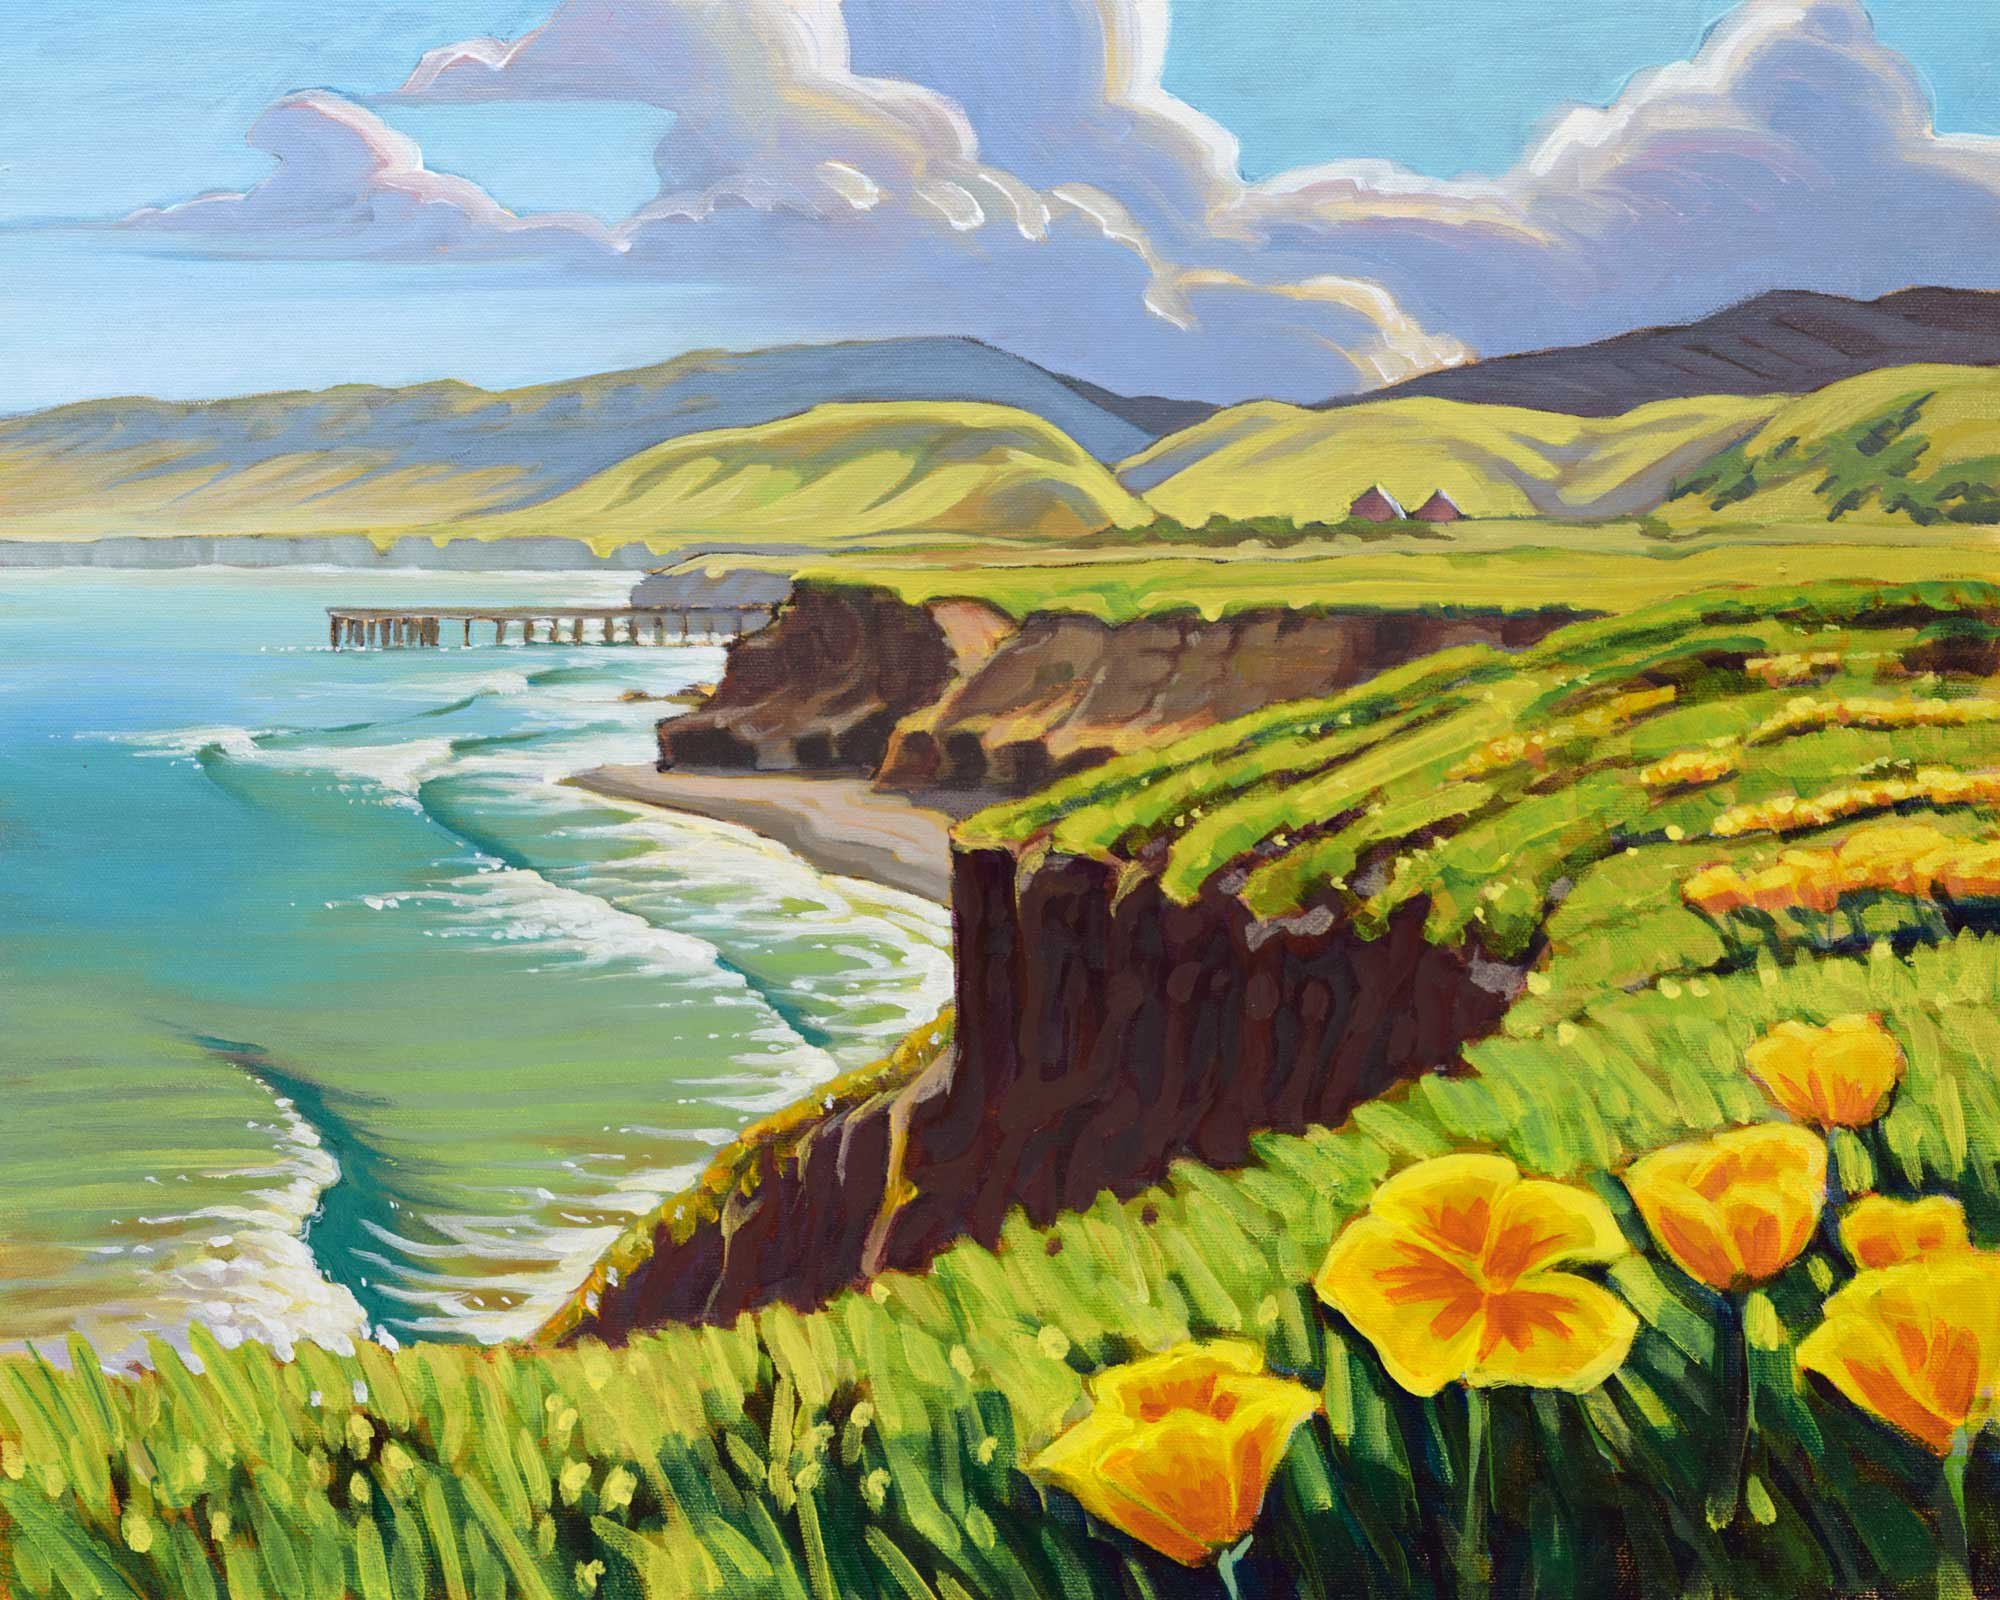 Plein air painting of two barns and the pier at Becher's Bay on Santa Rosa Island off the coast of Southern California